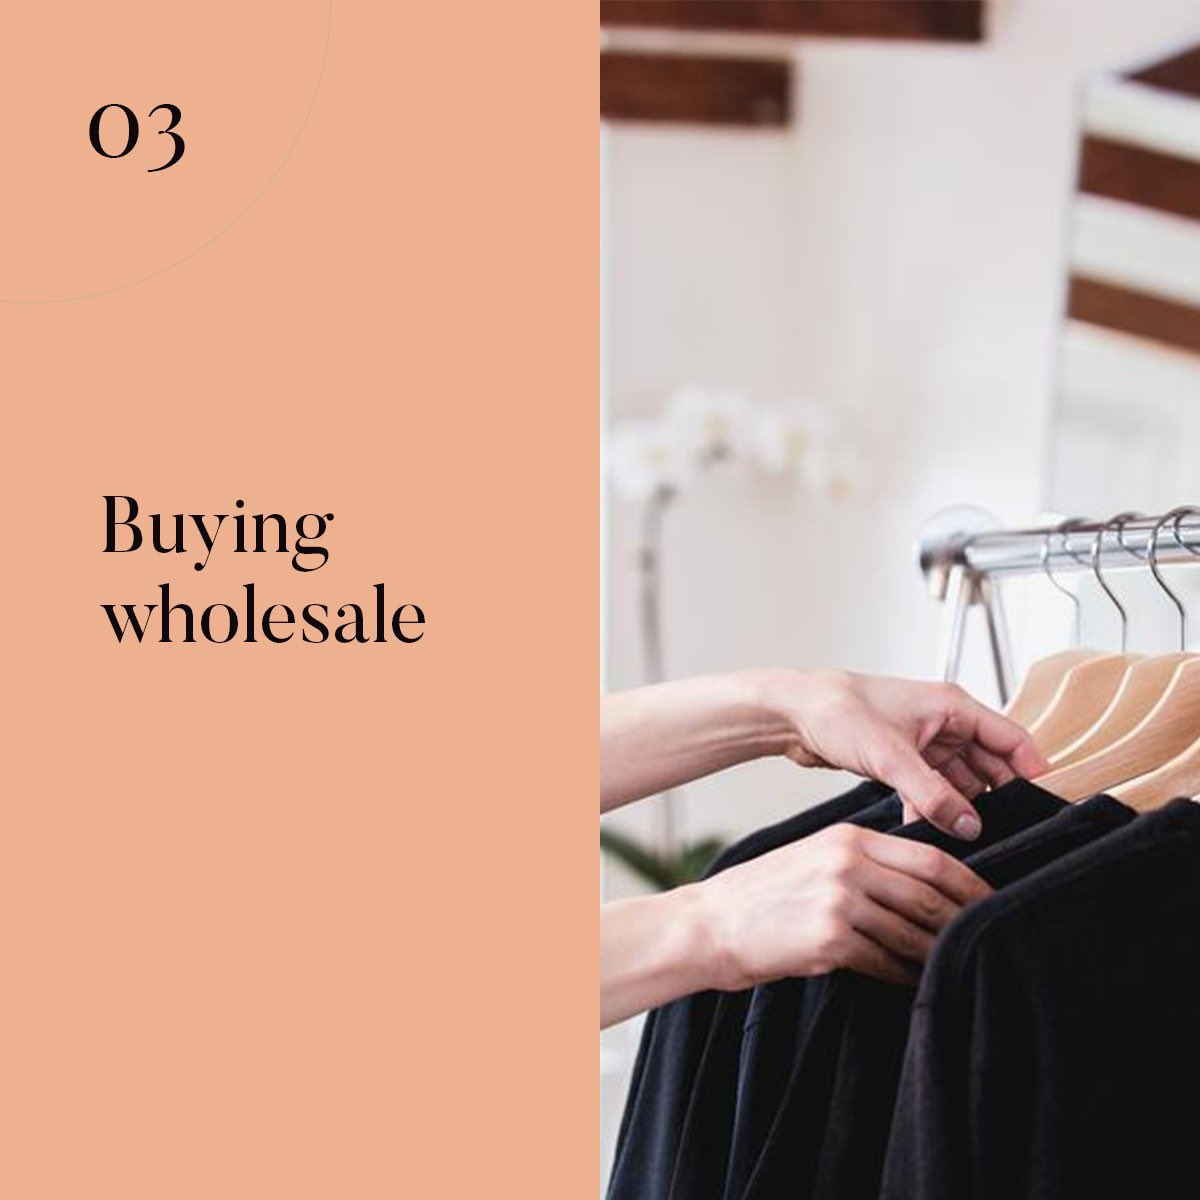 Join @megbutton & I for #setupshop at 7pm.   Whether you have a product or are still looking to source, this workshop will cover what you need to know:   Making your own product   Working with a manufacturer   Buying wholesale   Dropshipping pic.twitter.com/PDxNiyE63E